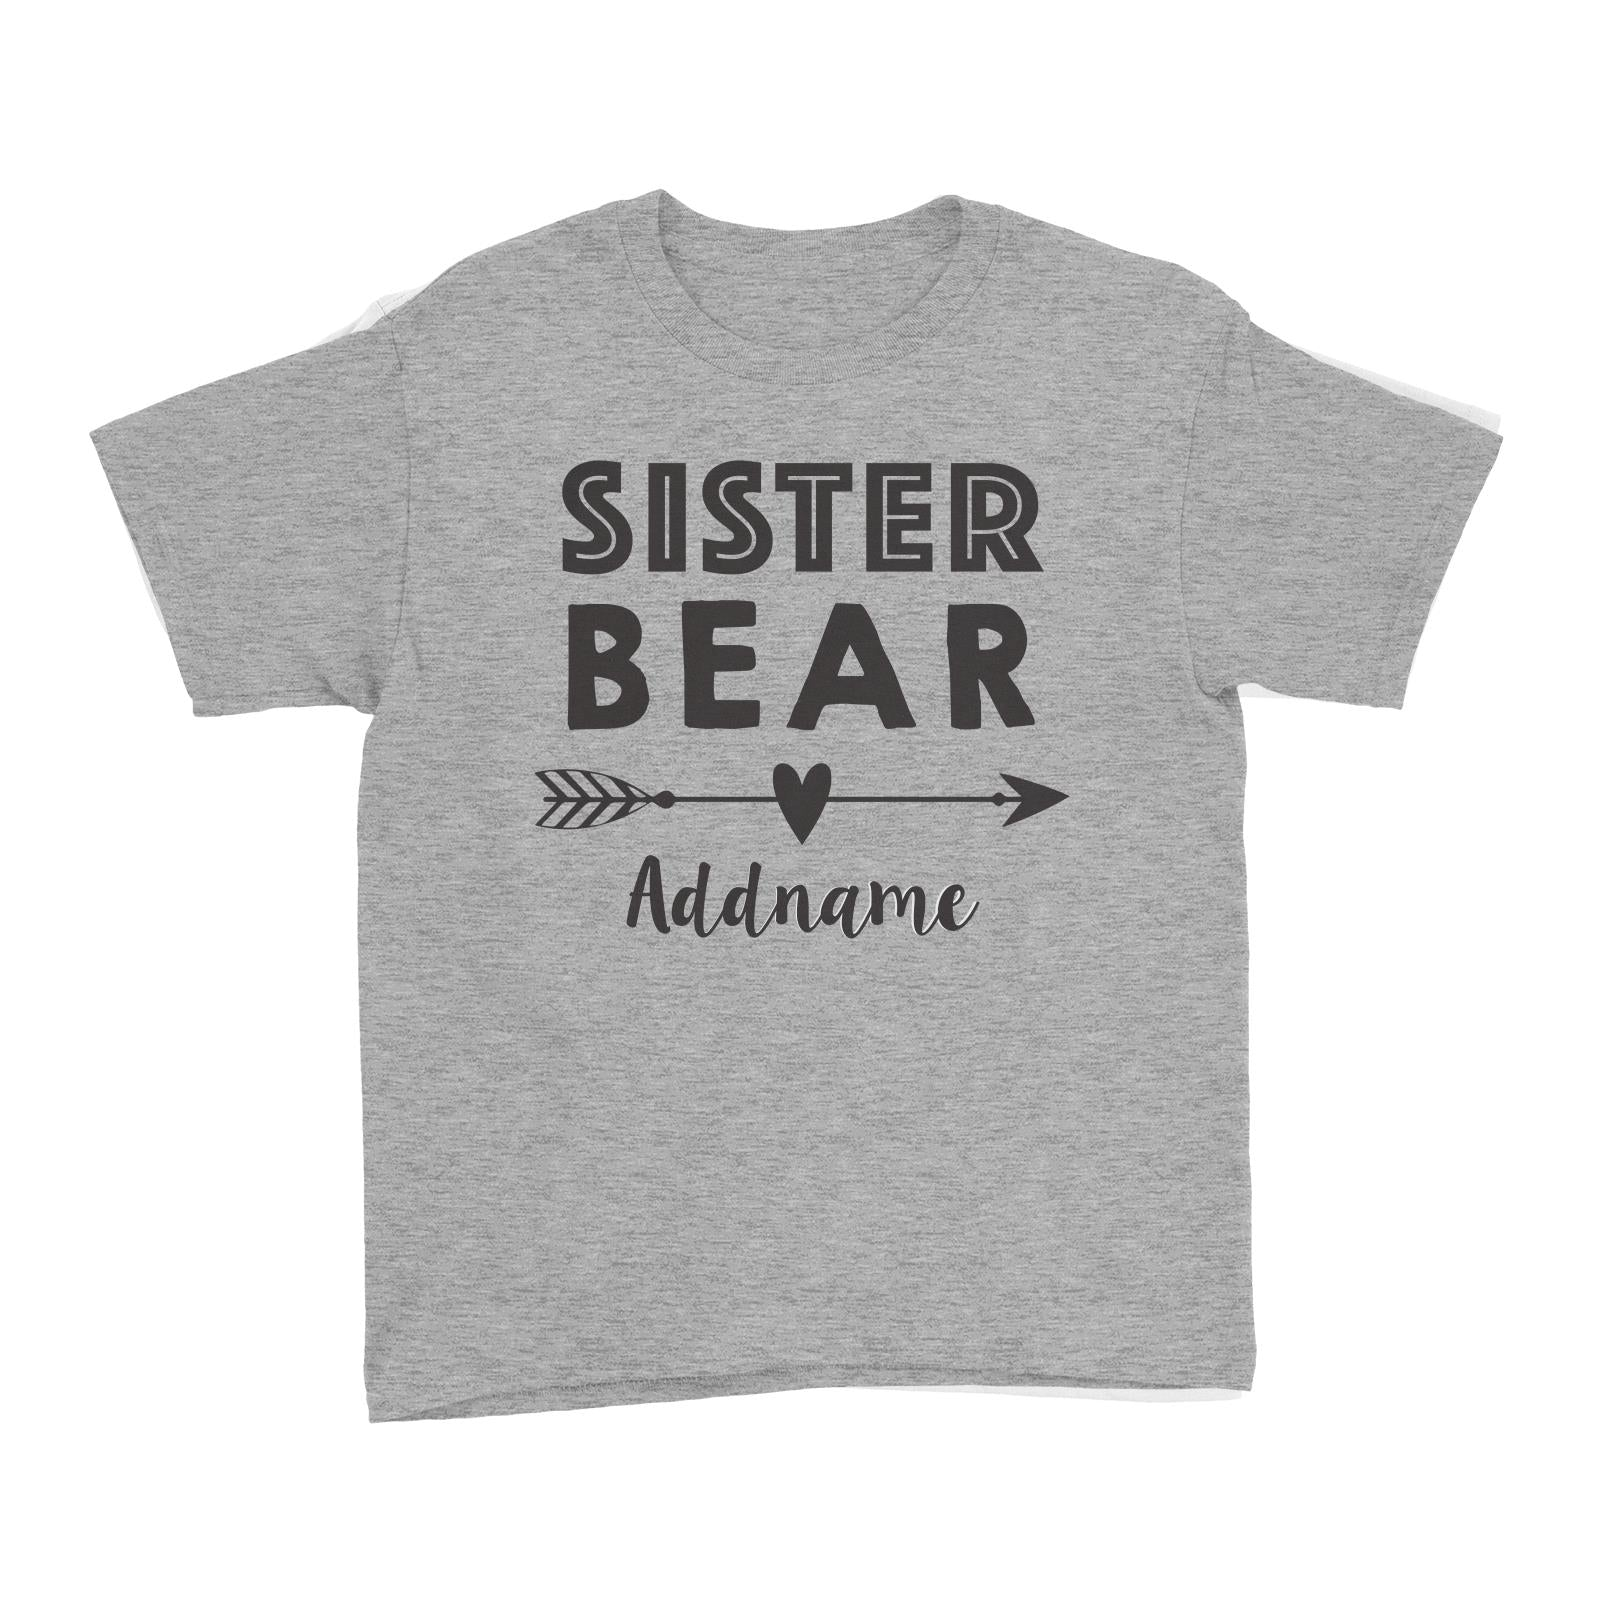 Sister Bear Addname Kid's T-Shirt  Matching Family Personalizable Designs